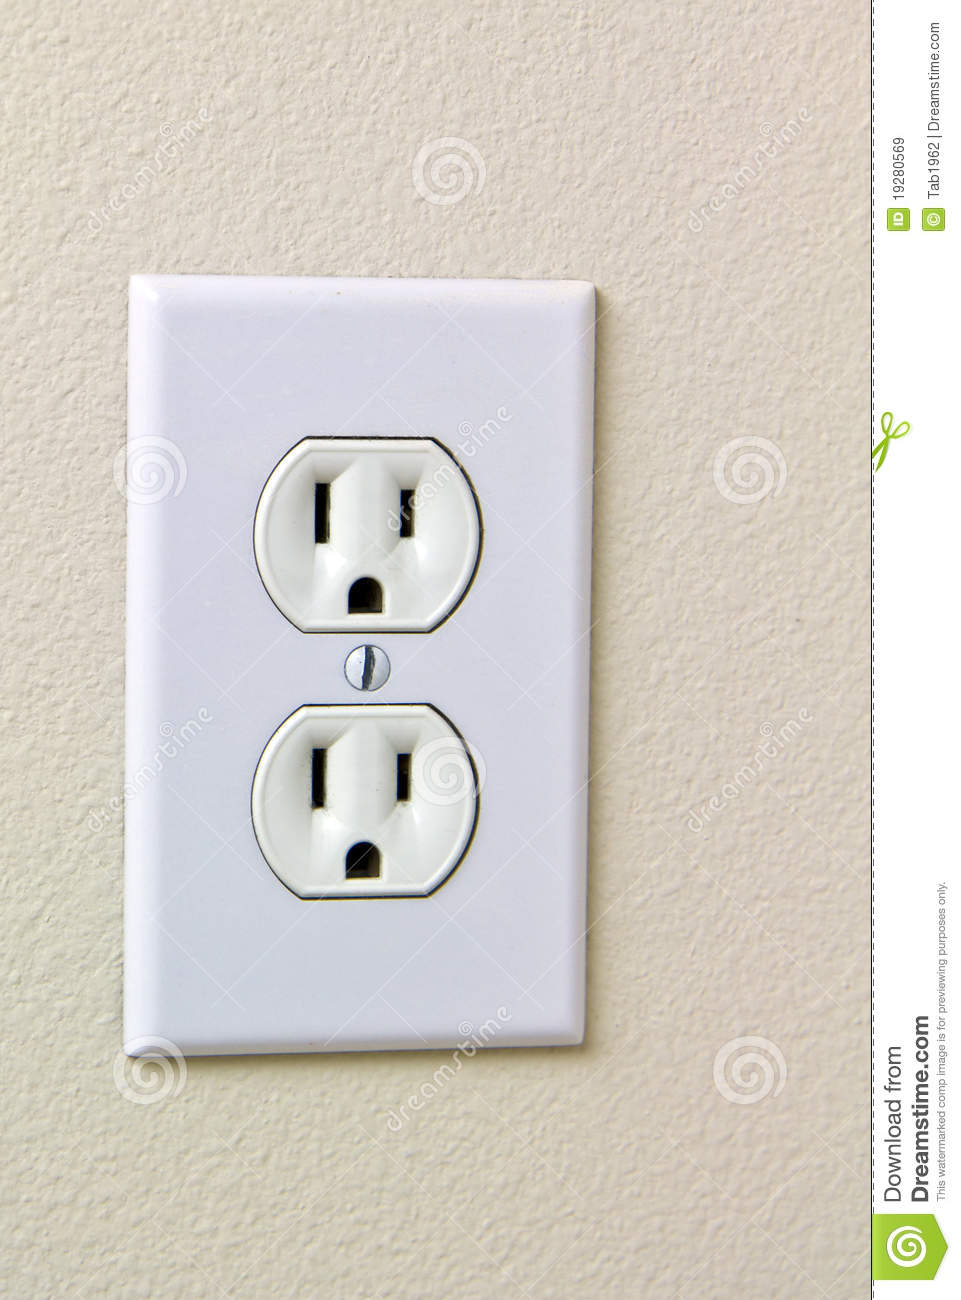 Electrical House Outlet 110 Royalty Free Stock Images